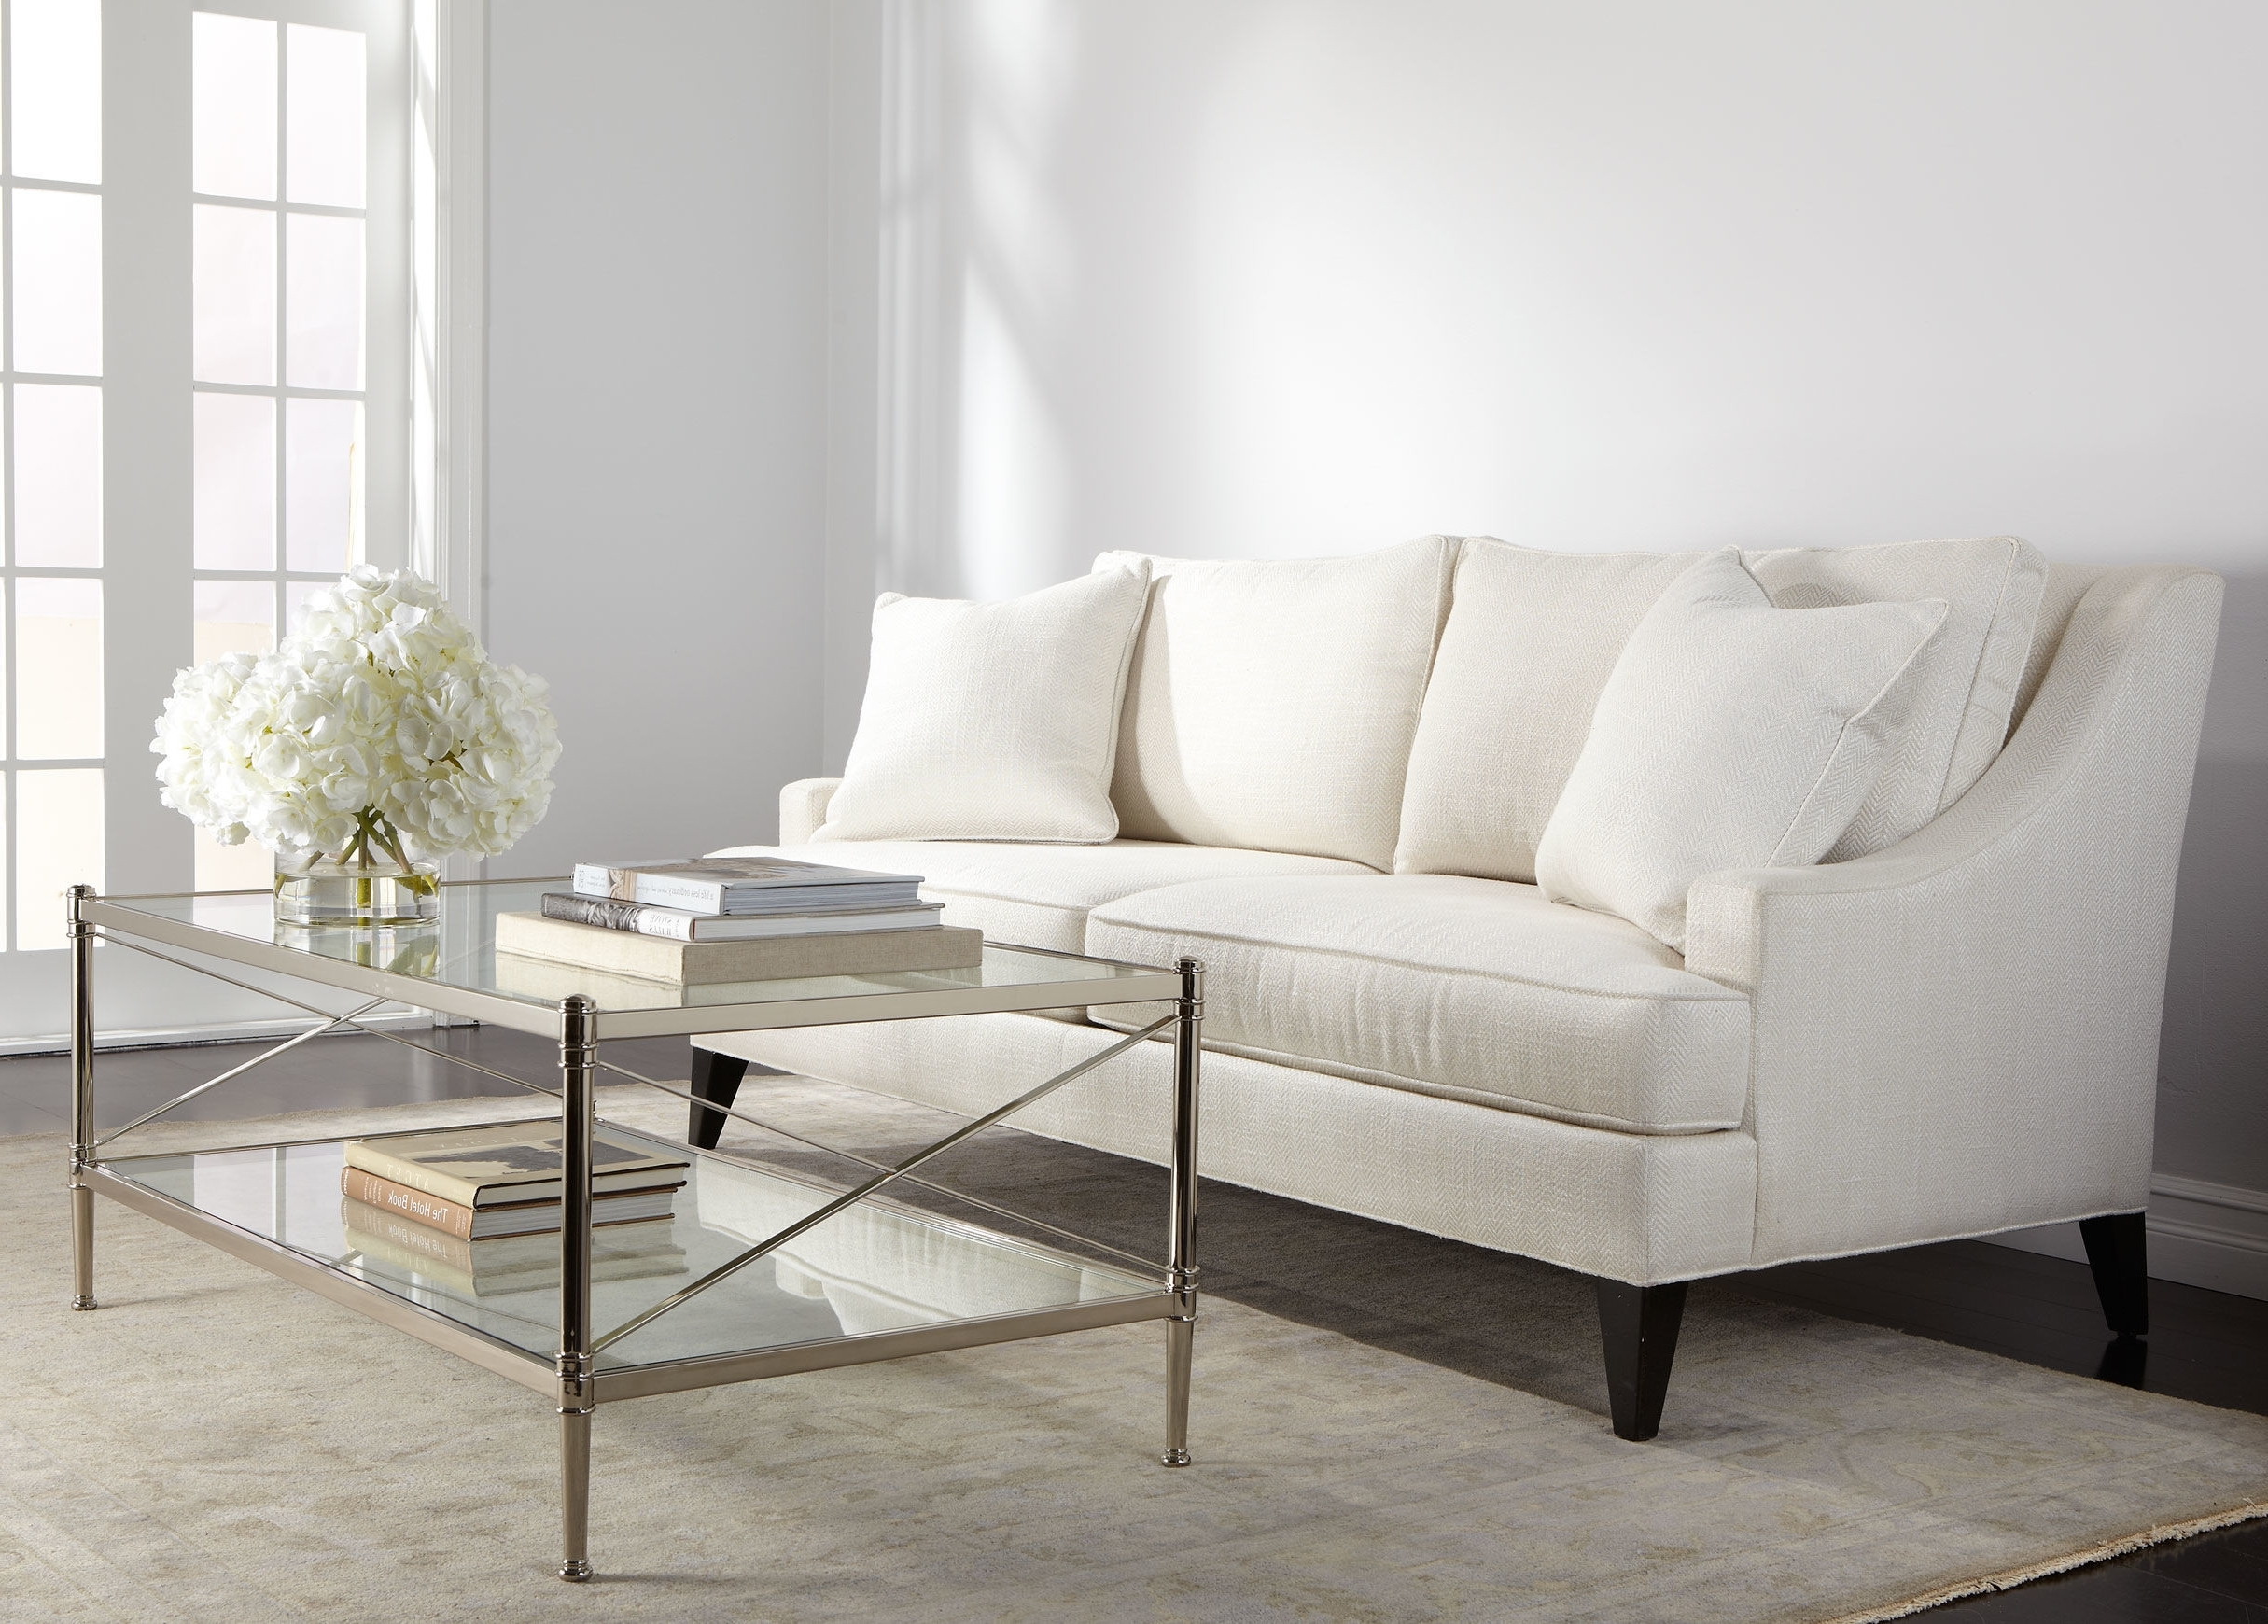 Down Filled Sofas Intended For Favorite Furniture : Ethan Allen Down Filled Sofa Elegant Best Ethan Allen (Gallery 7 of 20)